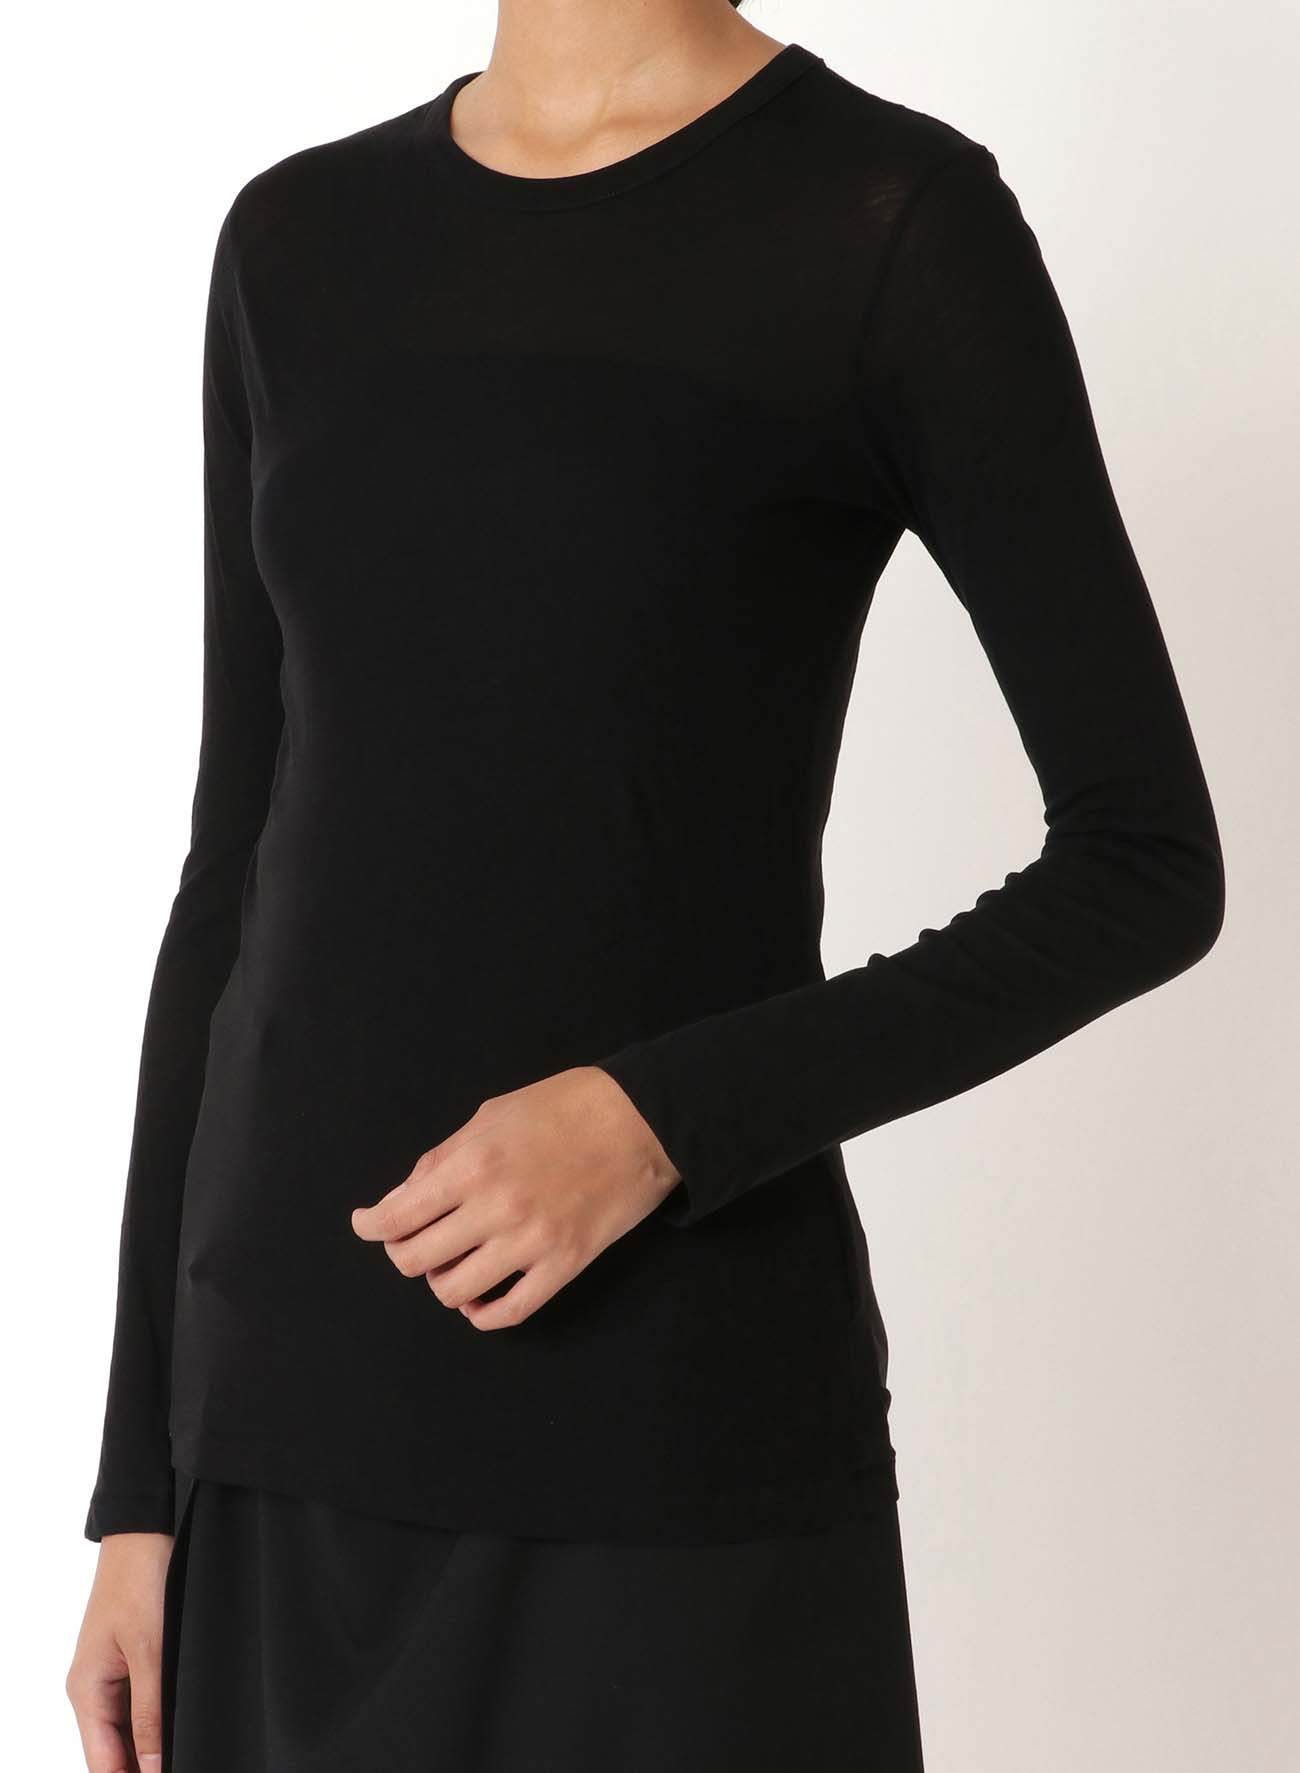 801-COSMORAMA PLAIN STITCH ROUND NECK LONG SLEEVE